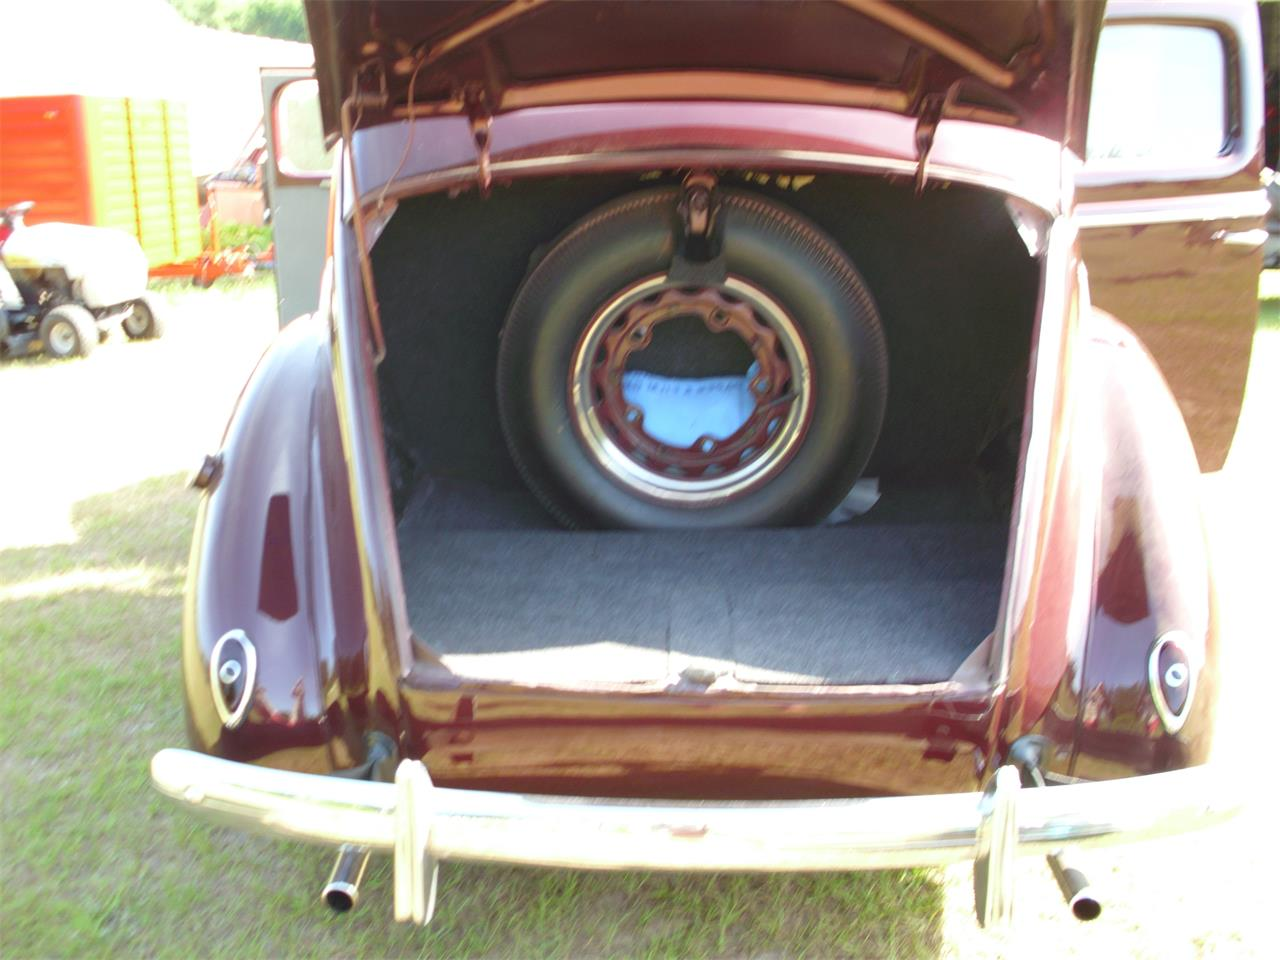 Large Picture of Classic '39 Ford Fordor Deluxe located in Georgia Offered by a Private Seller - ETZZ